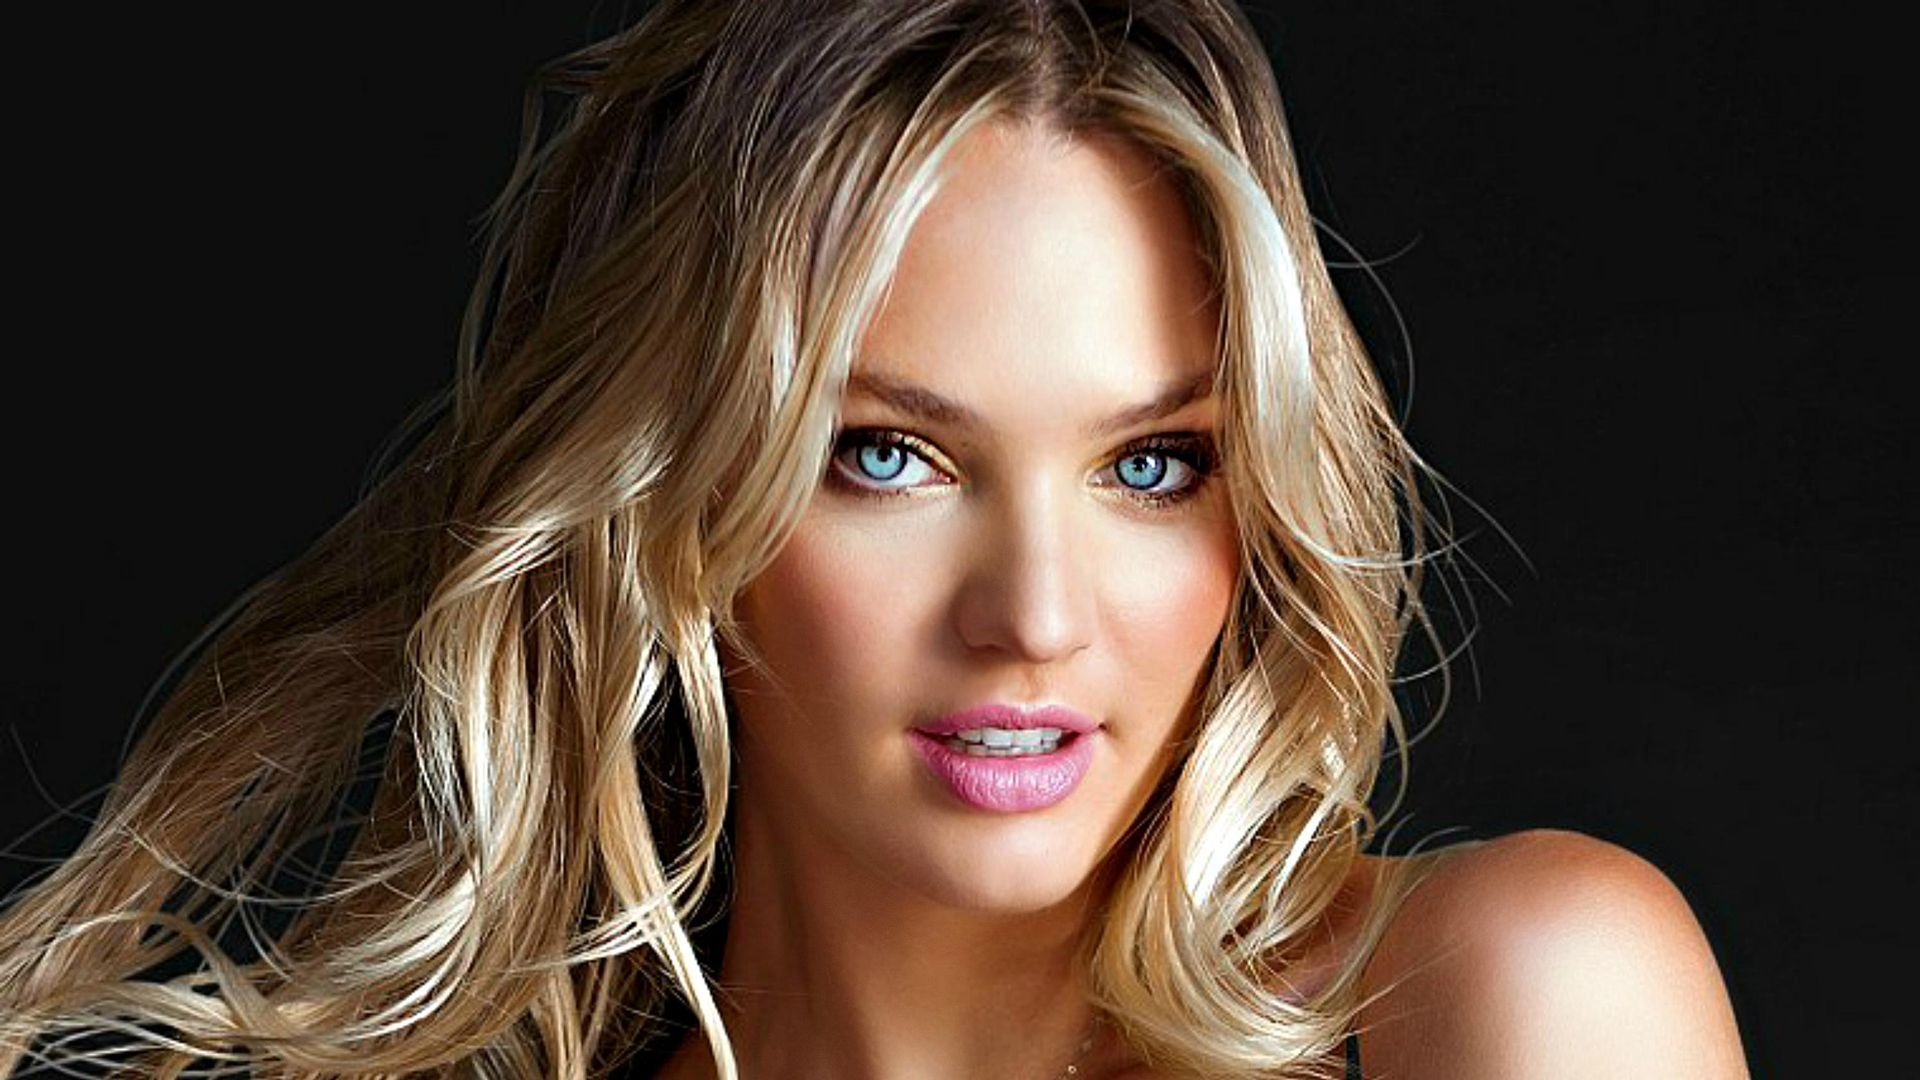 Candice Swanepoel Wallpapers Top Free Candice Swanepoel